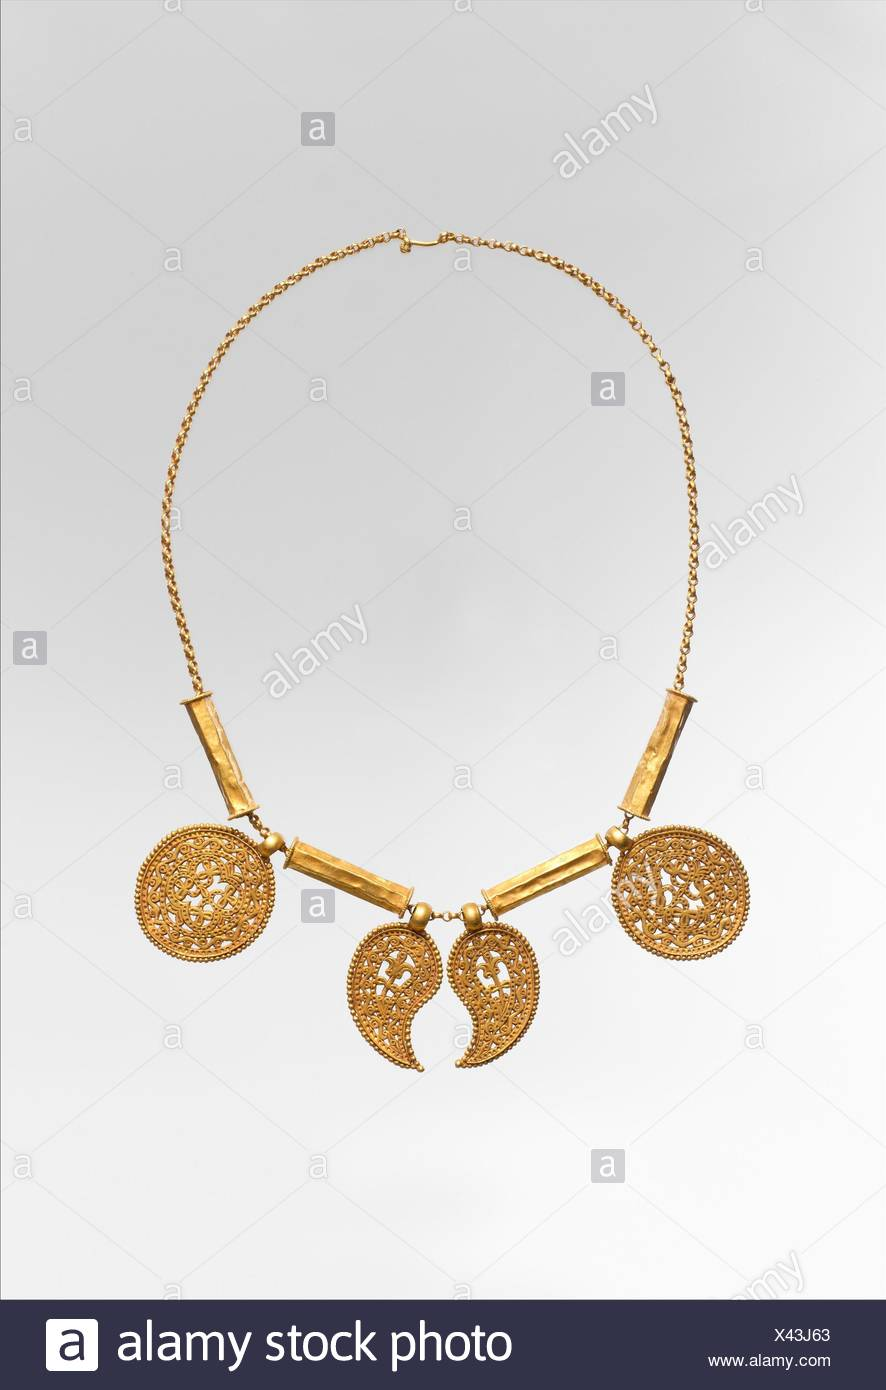 Engraved necklace stock photos engraved necklace stock images alamy gold necklace with pendants date ca 7th century culture byzantine aloadofball Choice Image